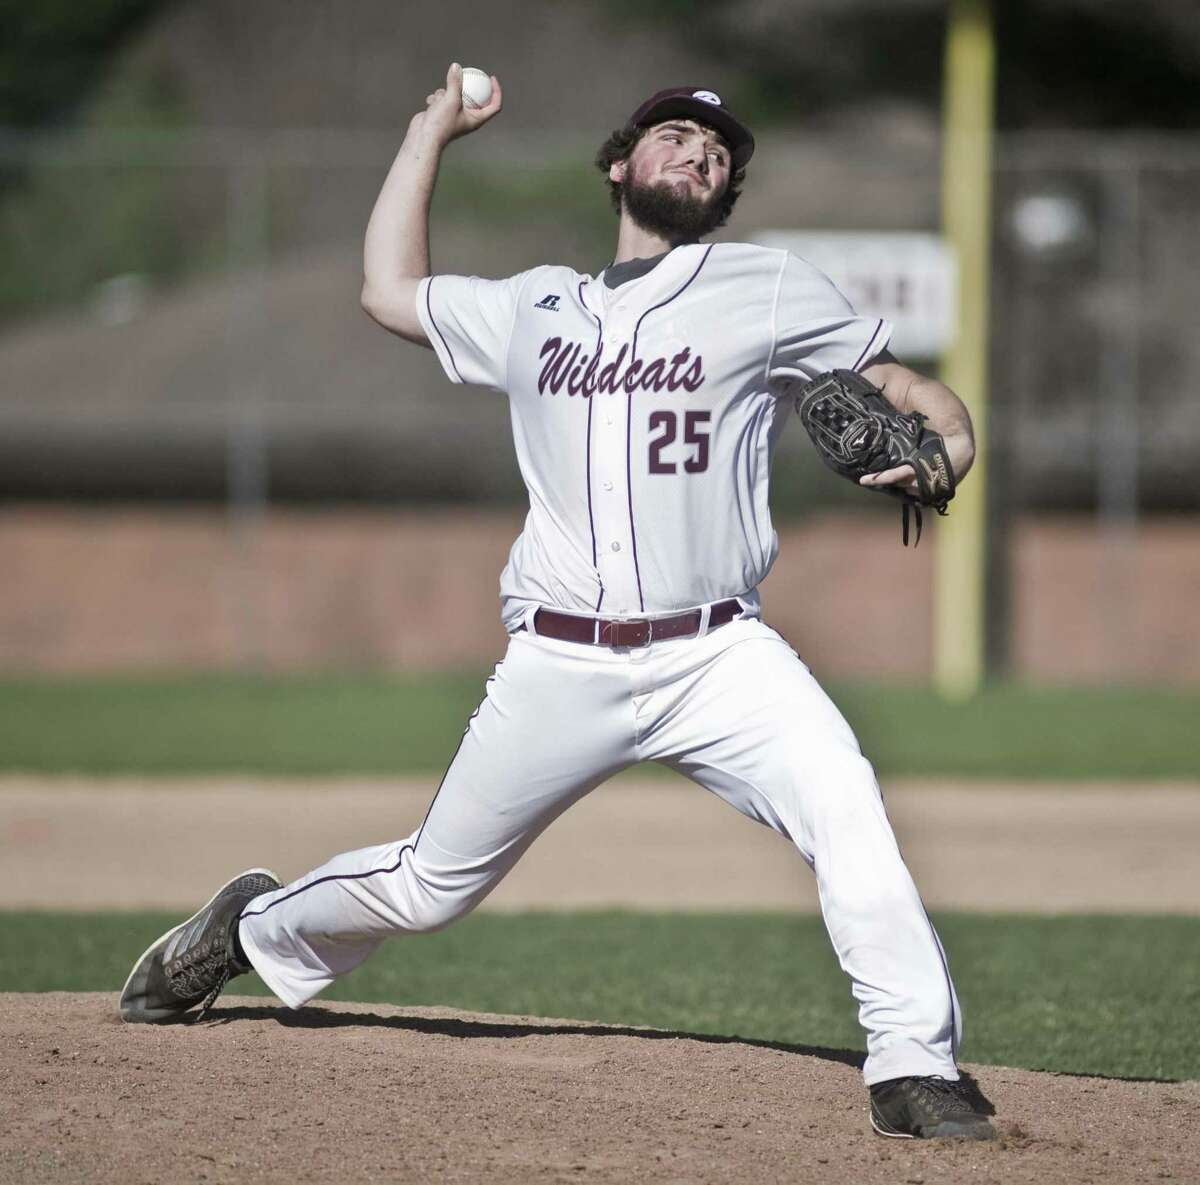 Bethel High School pitcher Jack Carraturo releases the ball in a game against Notre Dame-Fairfield High School, played at Bethel. Wednesday, April 17, 2019